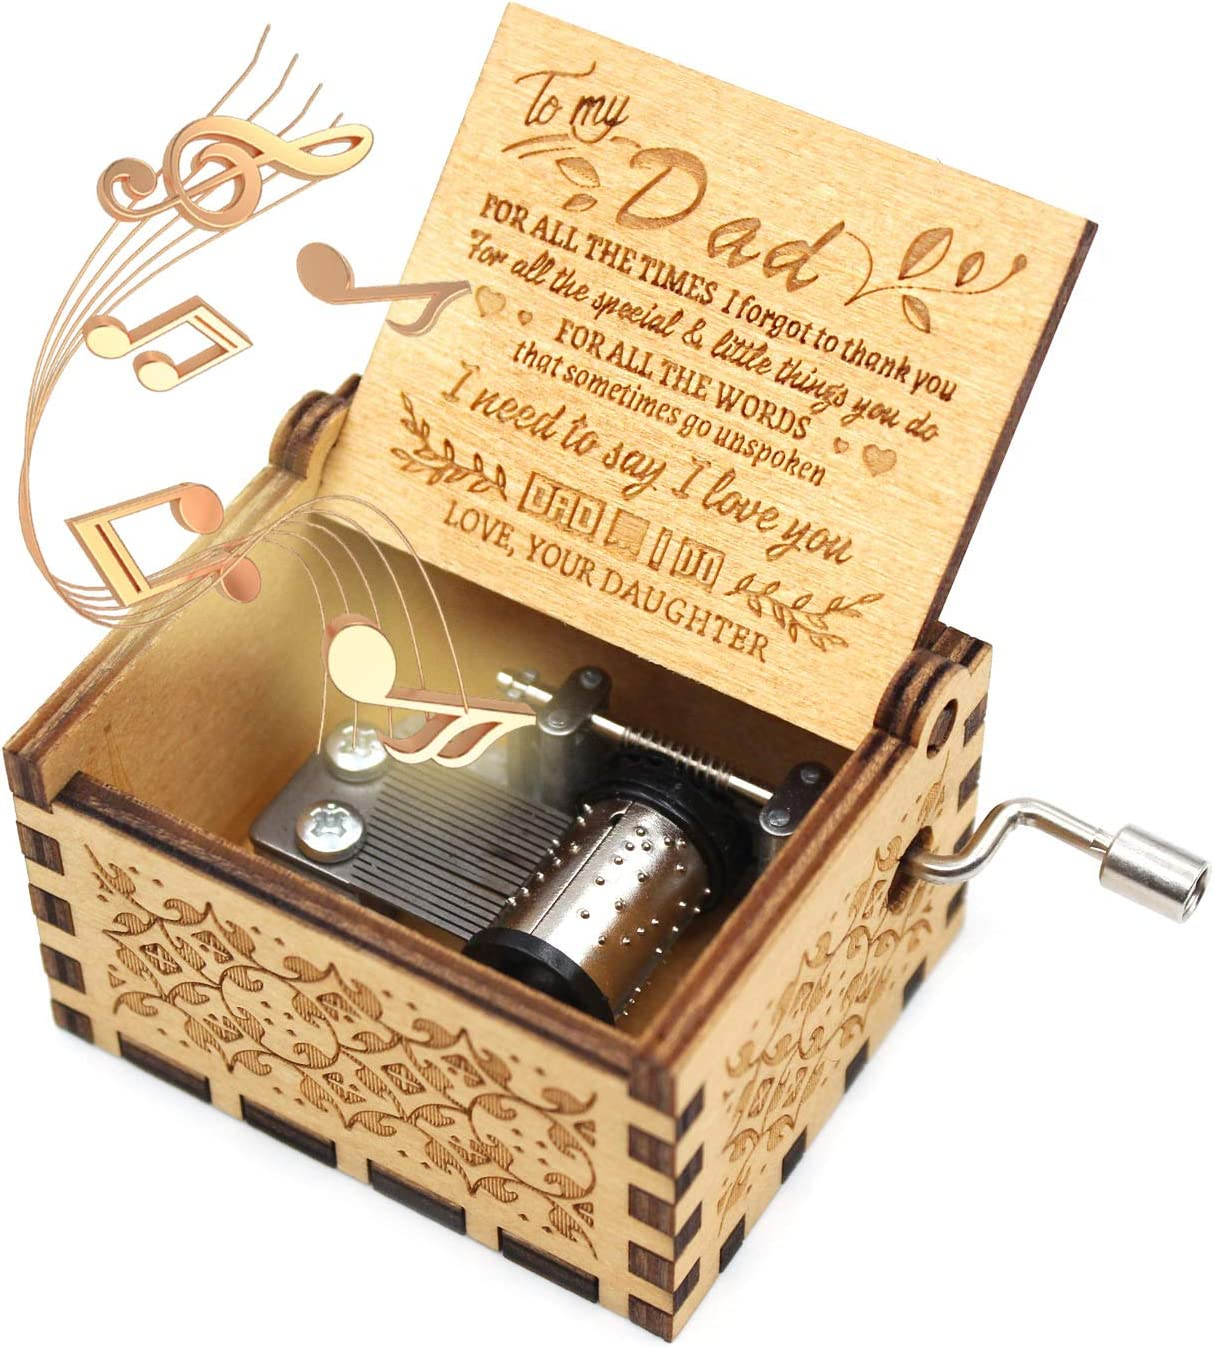 ukebobo Wooden Music Box- You are My Sunshine Music Box, from Daughter to Father, Gifts for Dad,Newest Design Music Box - 1 Set